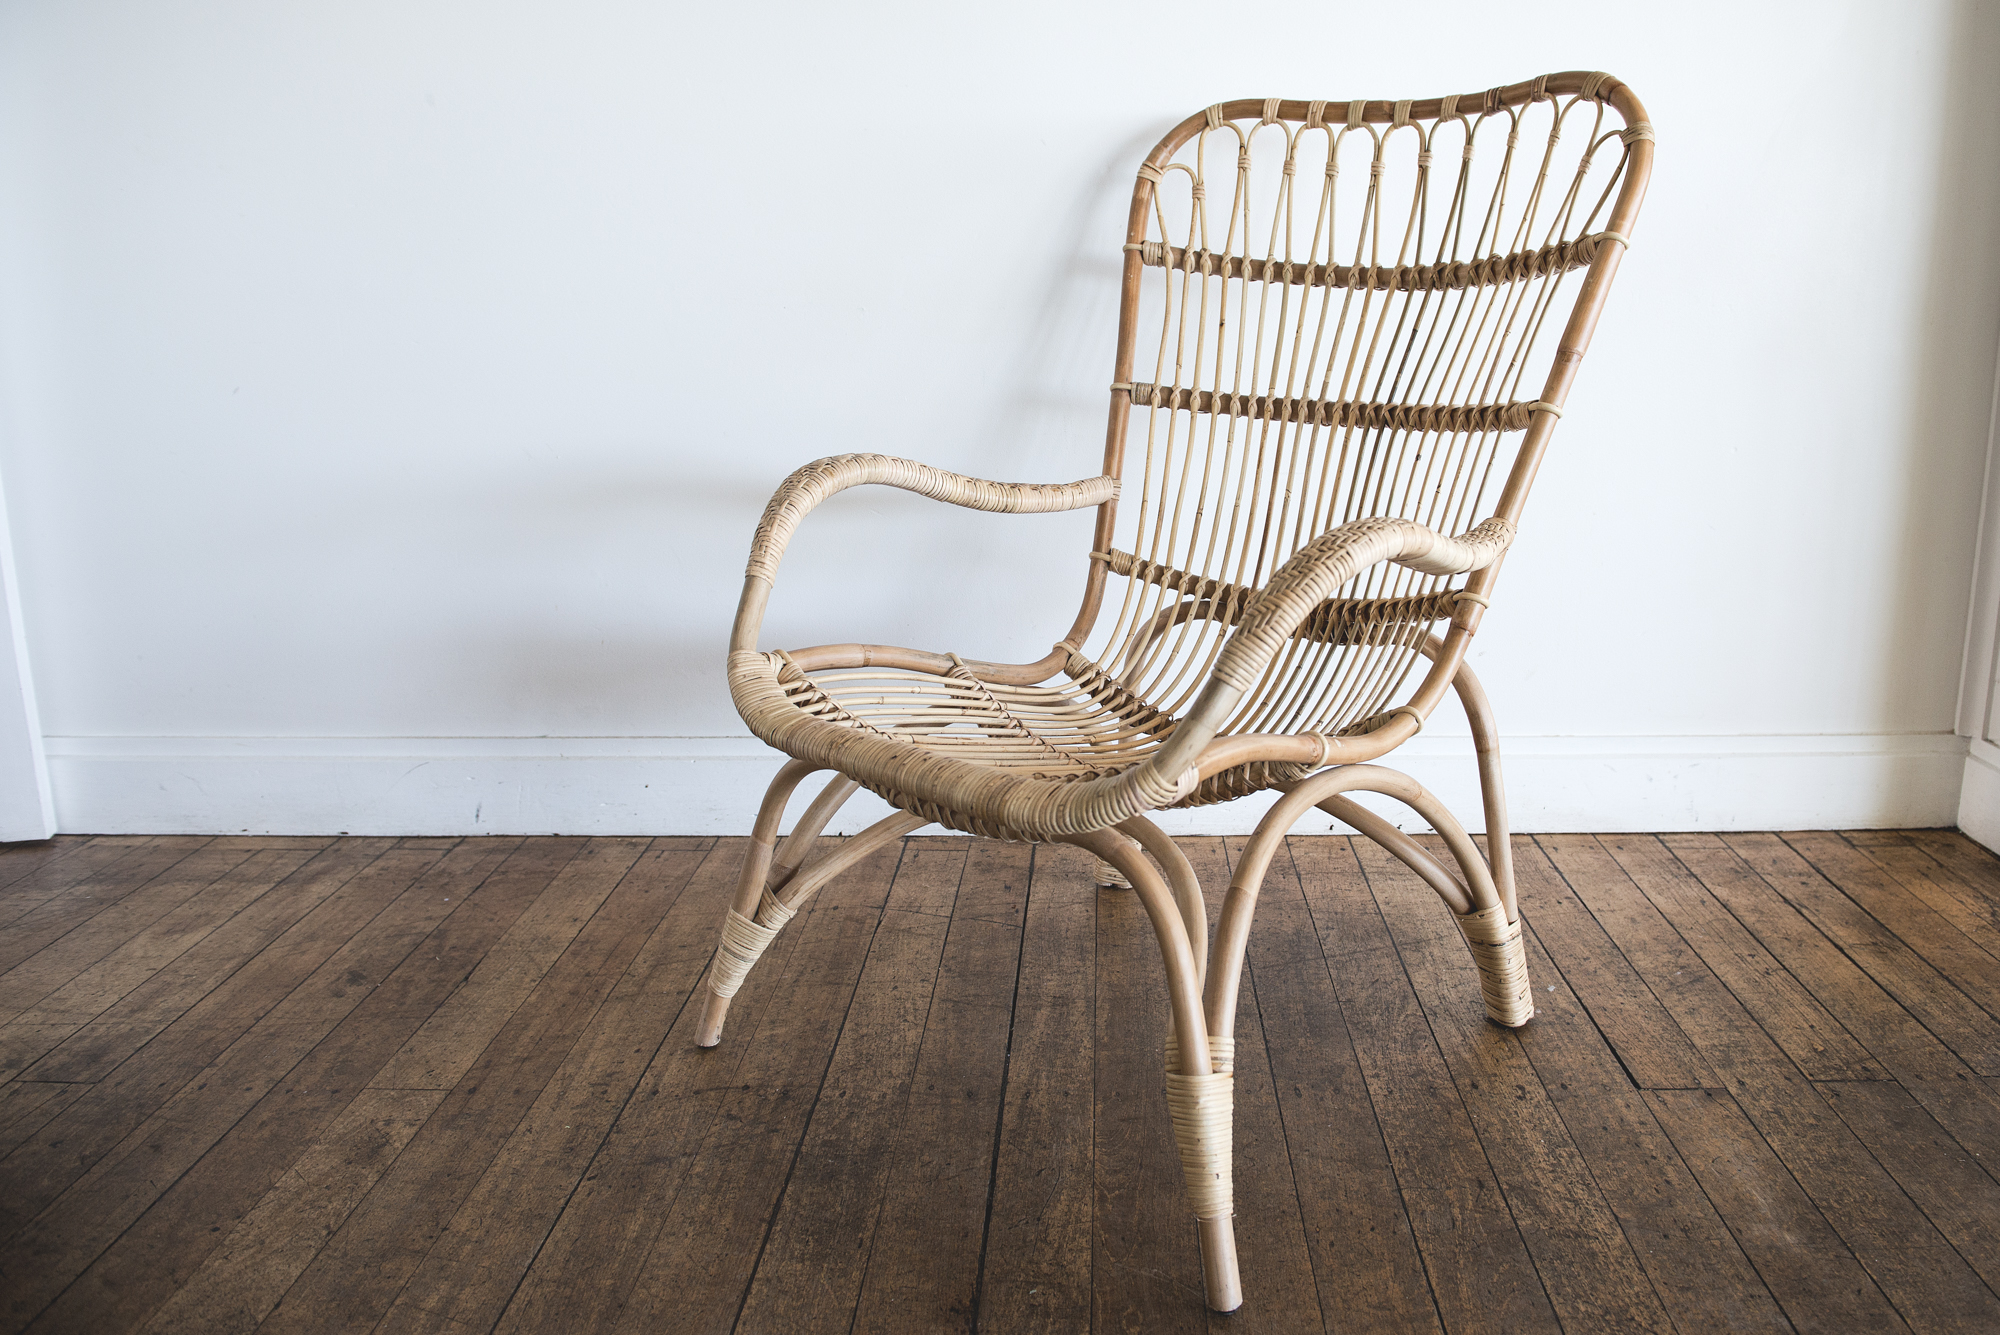 Rattan Relaxer Chair | $40ea | Qty 3